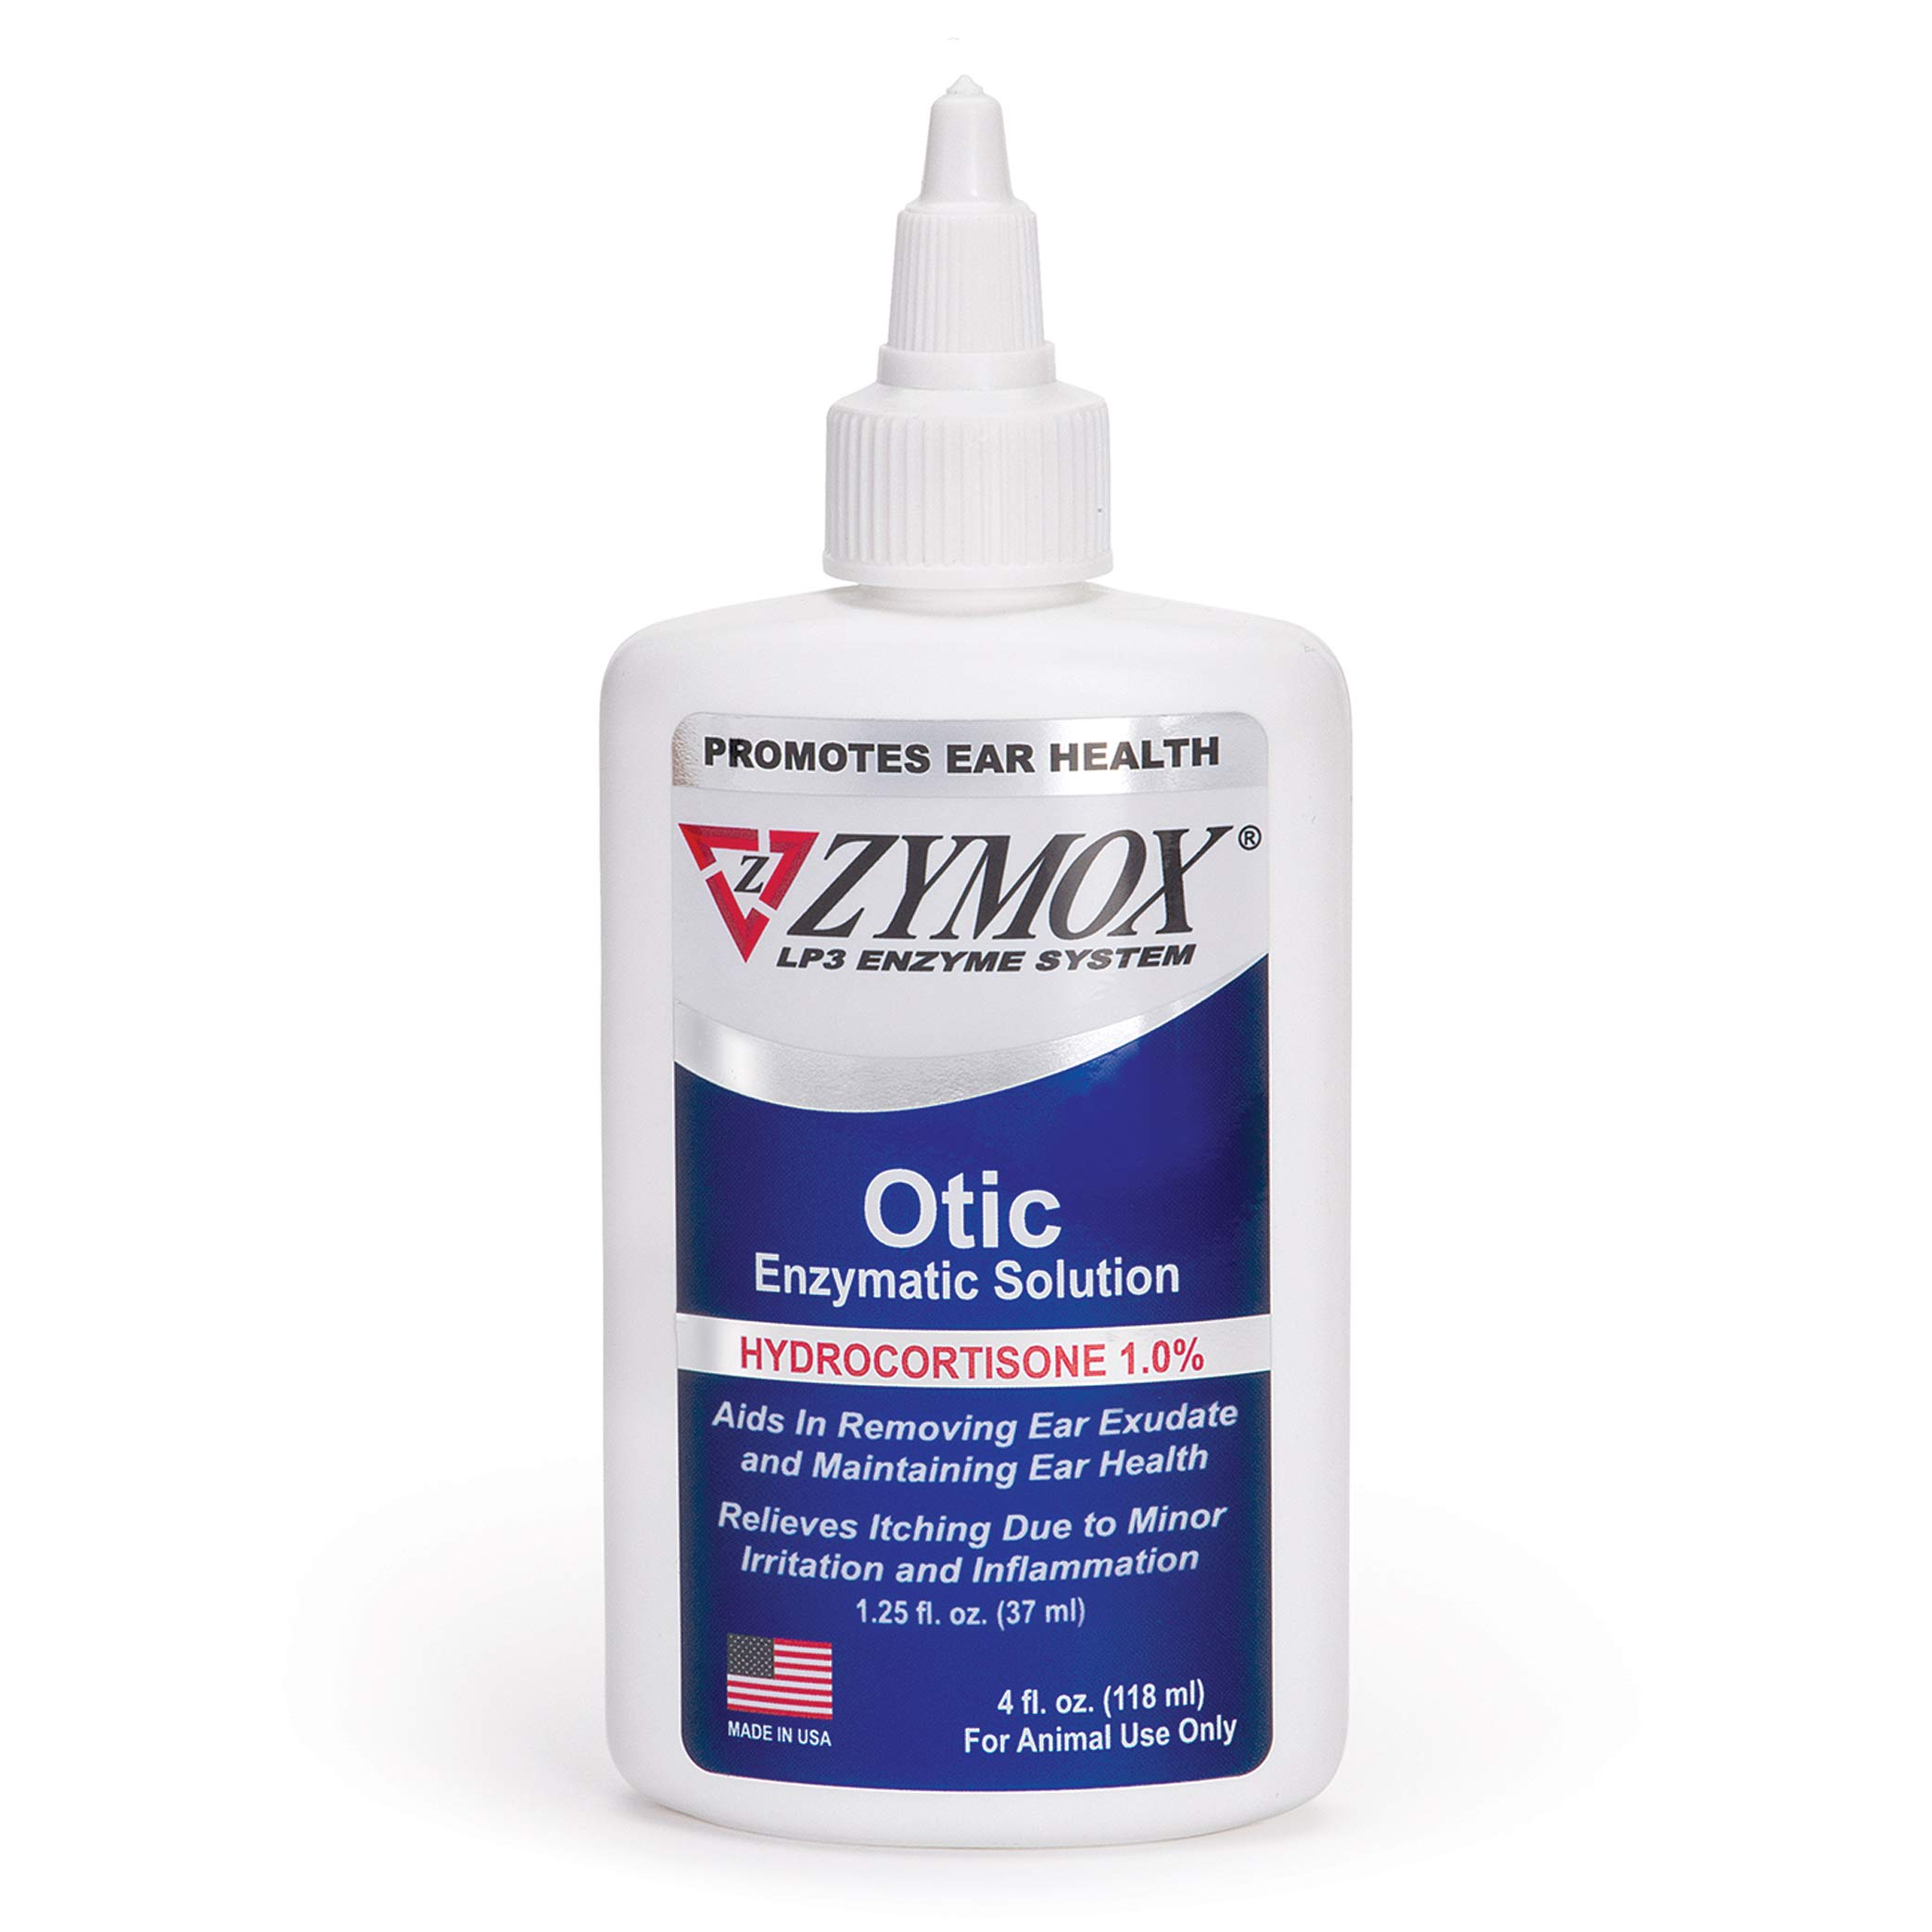 Zymox Otic Enzymatic Solution for Dogs and Cats to Soothe Ear Infections with 1% Hydrocortisone for Itch Relief, 4oz